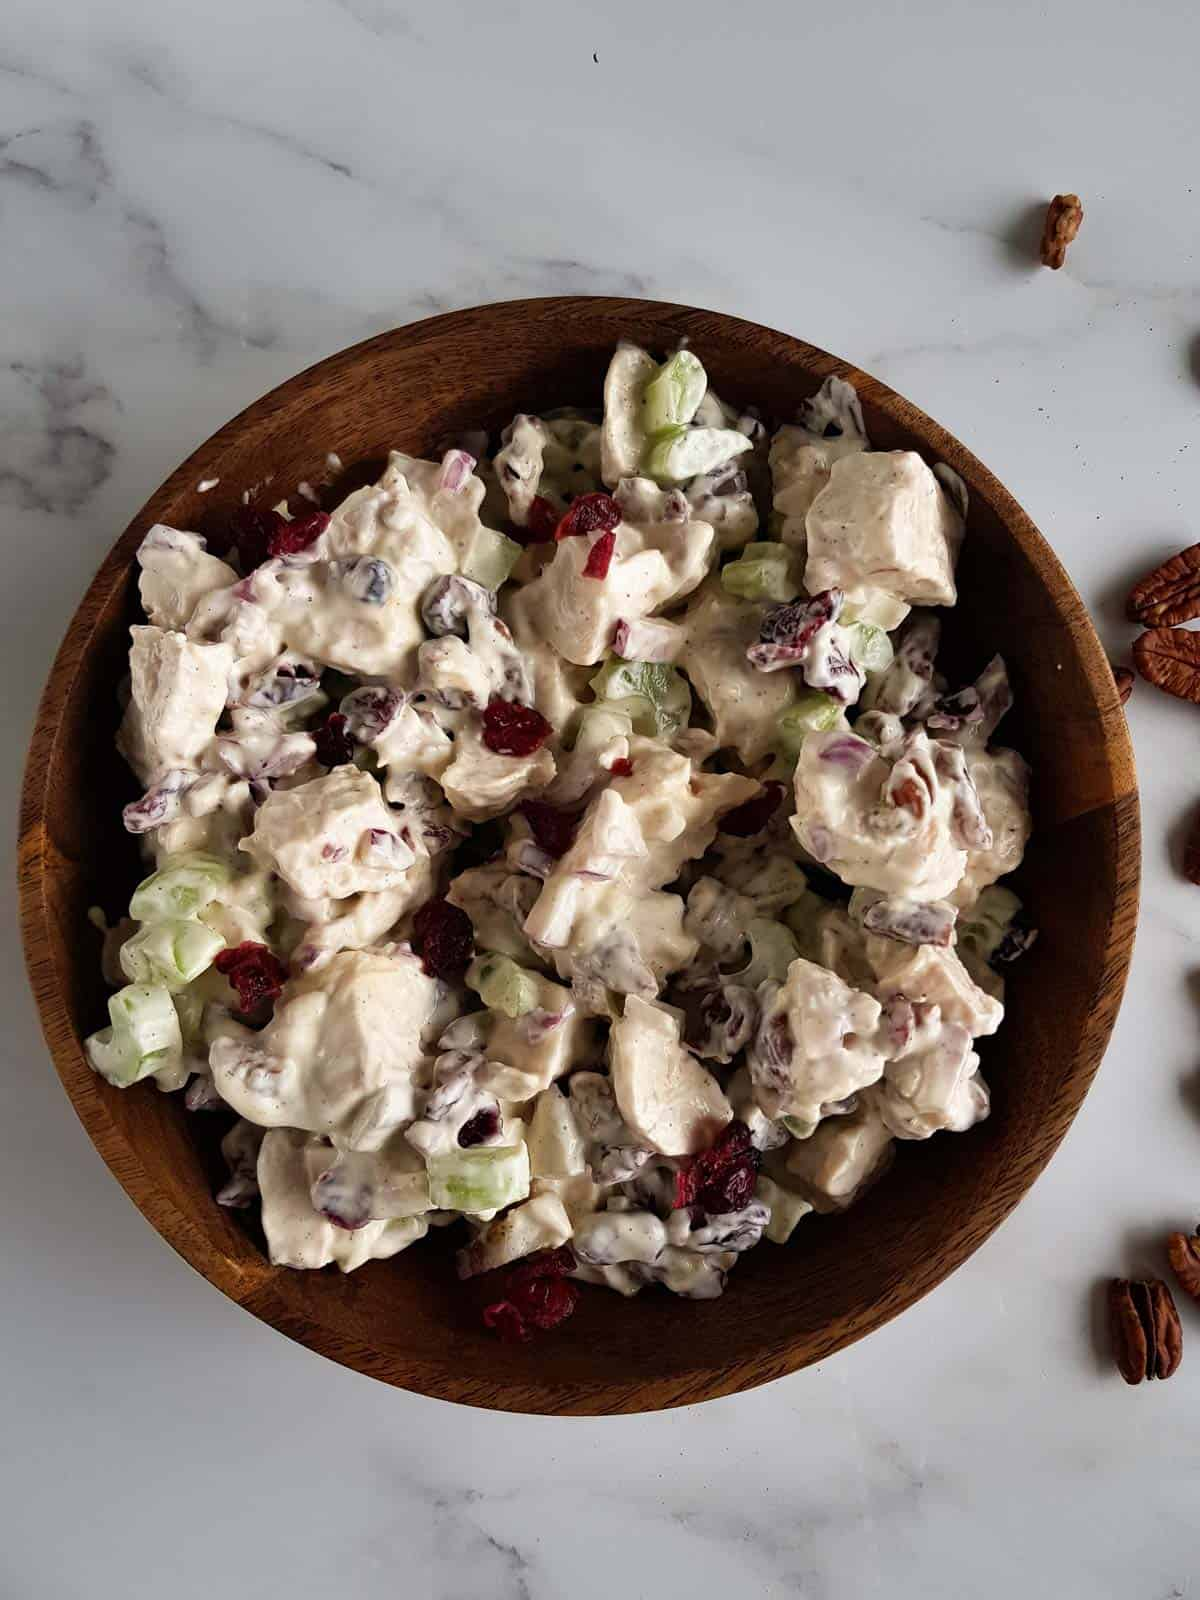 A bowl of chicken and cranberry salad.